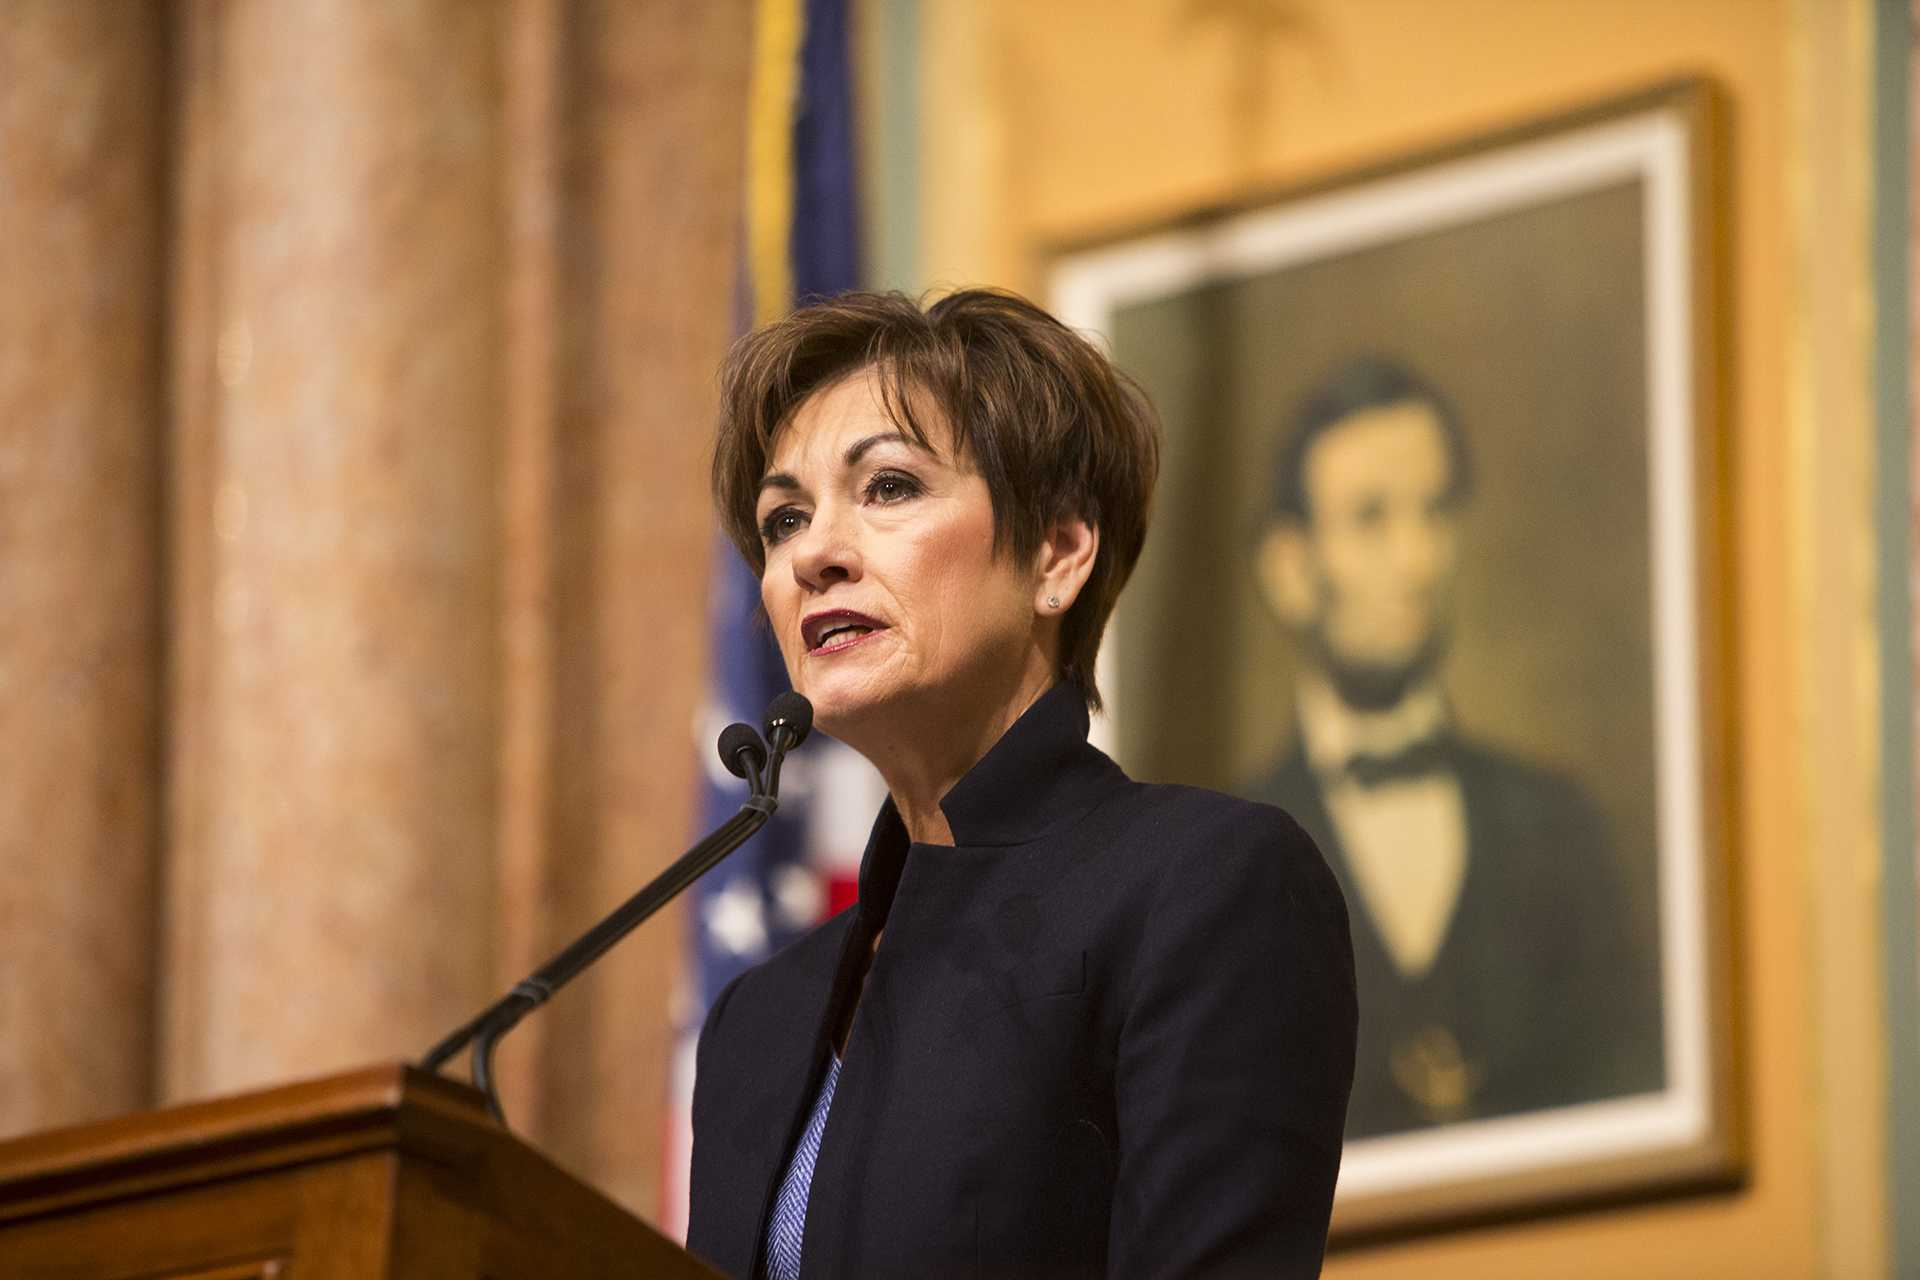 Iowa Gov. Kim Reynolds speaks during her first Condition of the State address in the Iowa State Capitol in Des Moines on Tuesday, Jan. 9, 2018. Reynolds took over the governor office in May 2017. (Joseph Cress/The Daily Iowan)